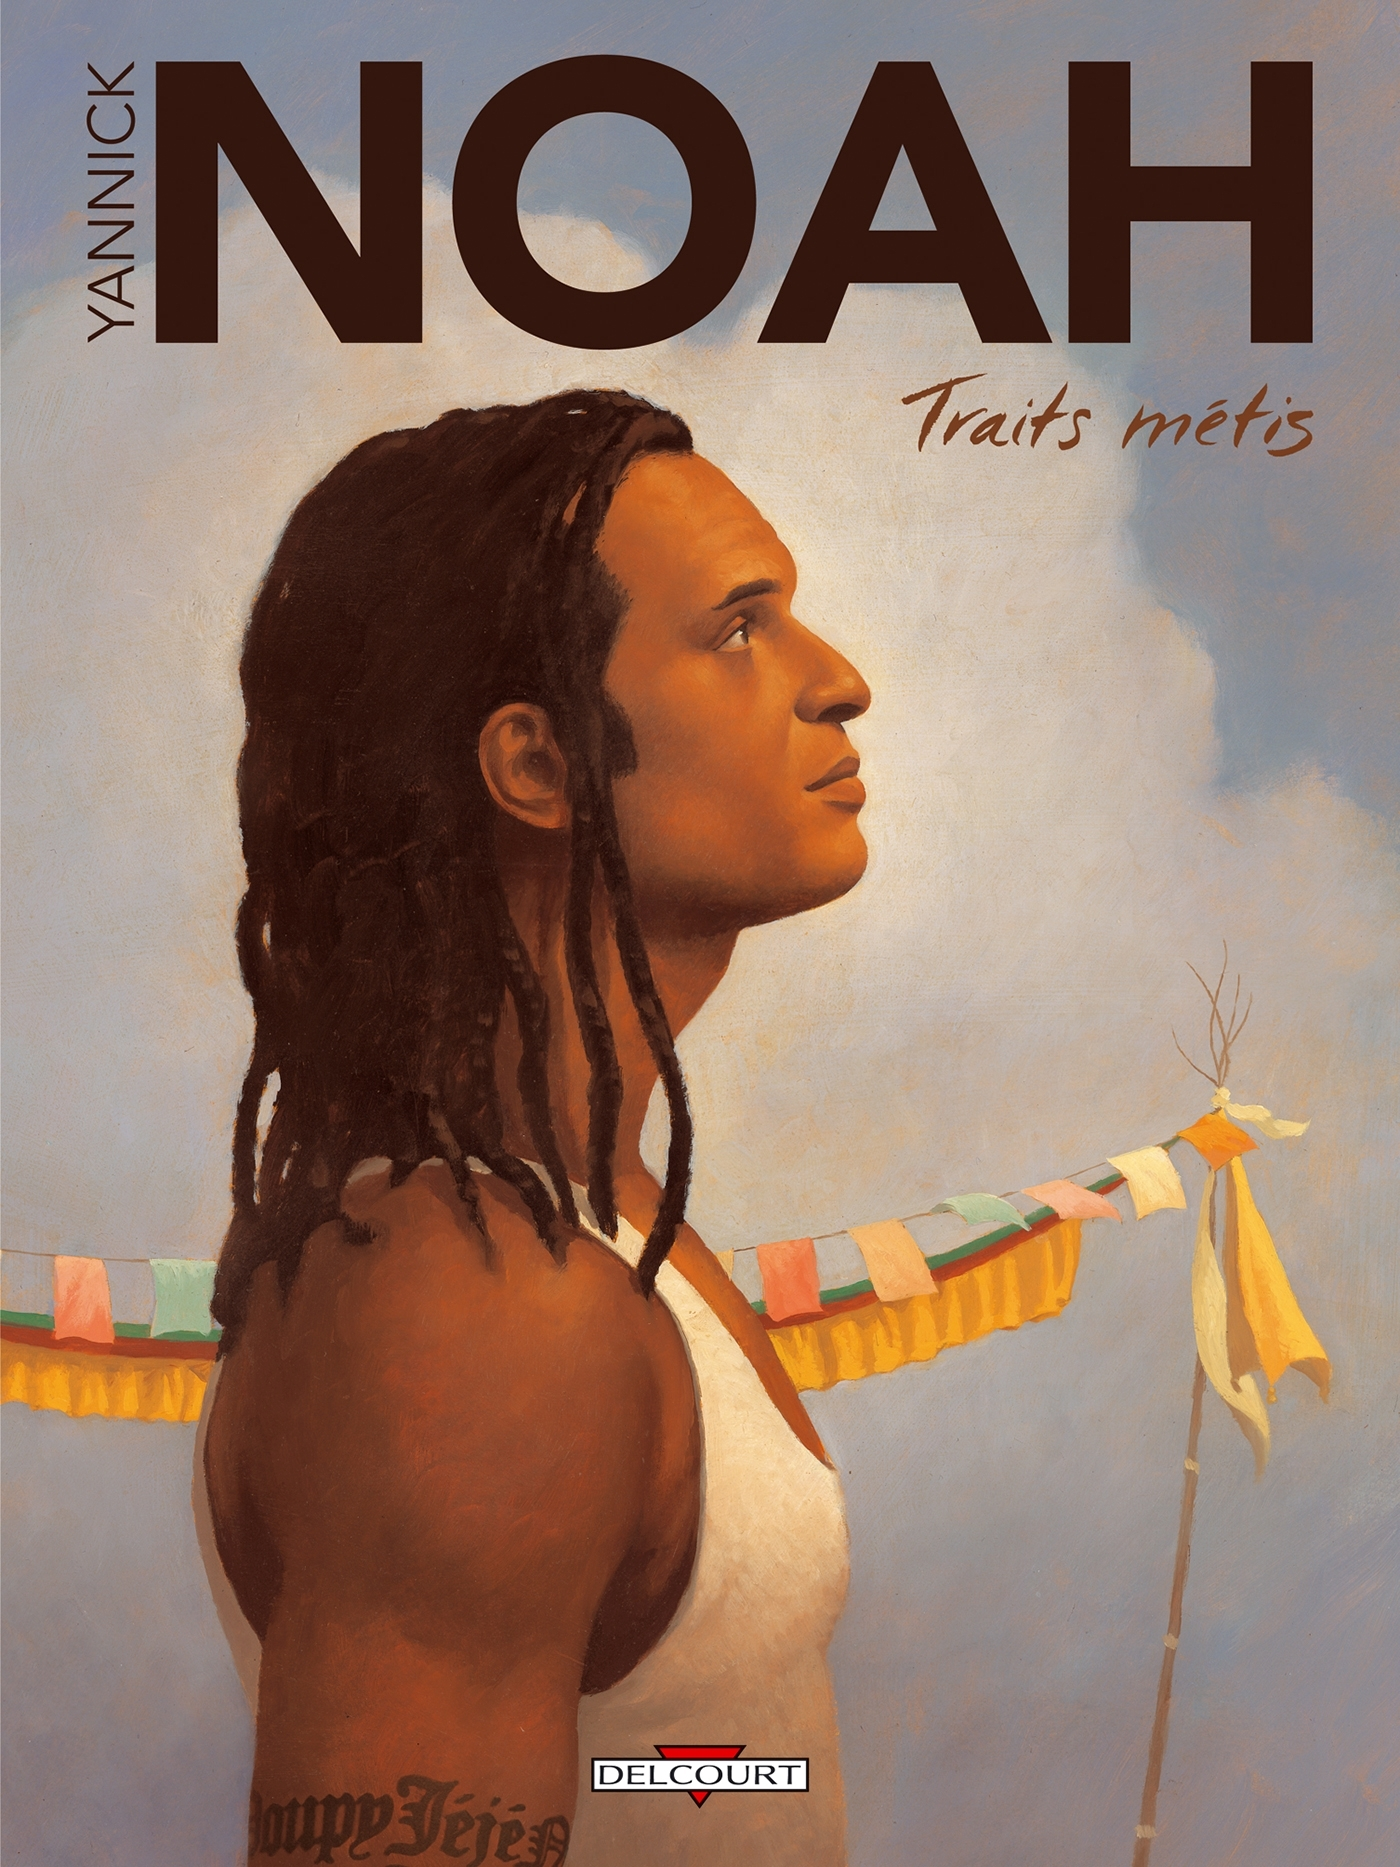 YANNICK NOAH - TRAITS METIS